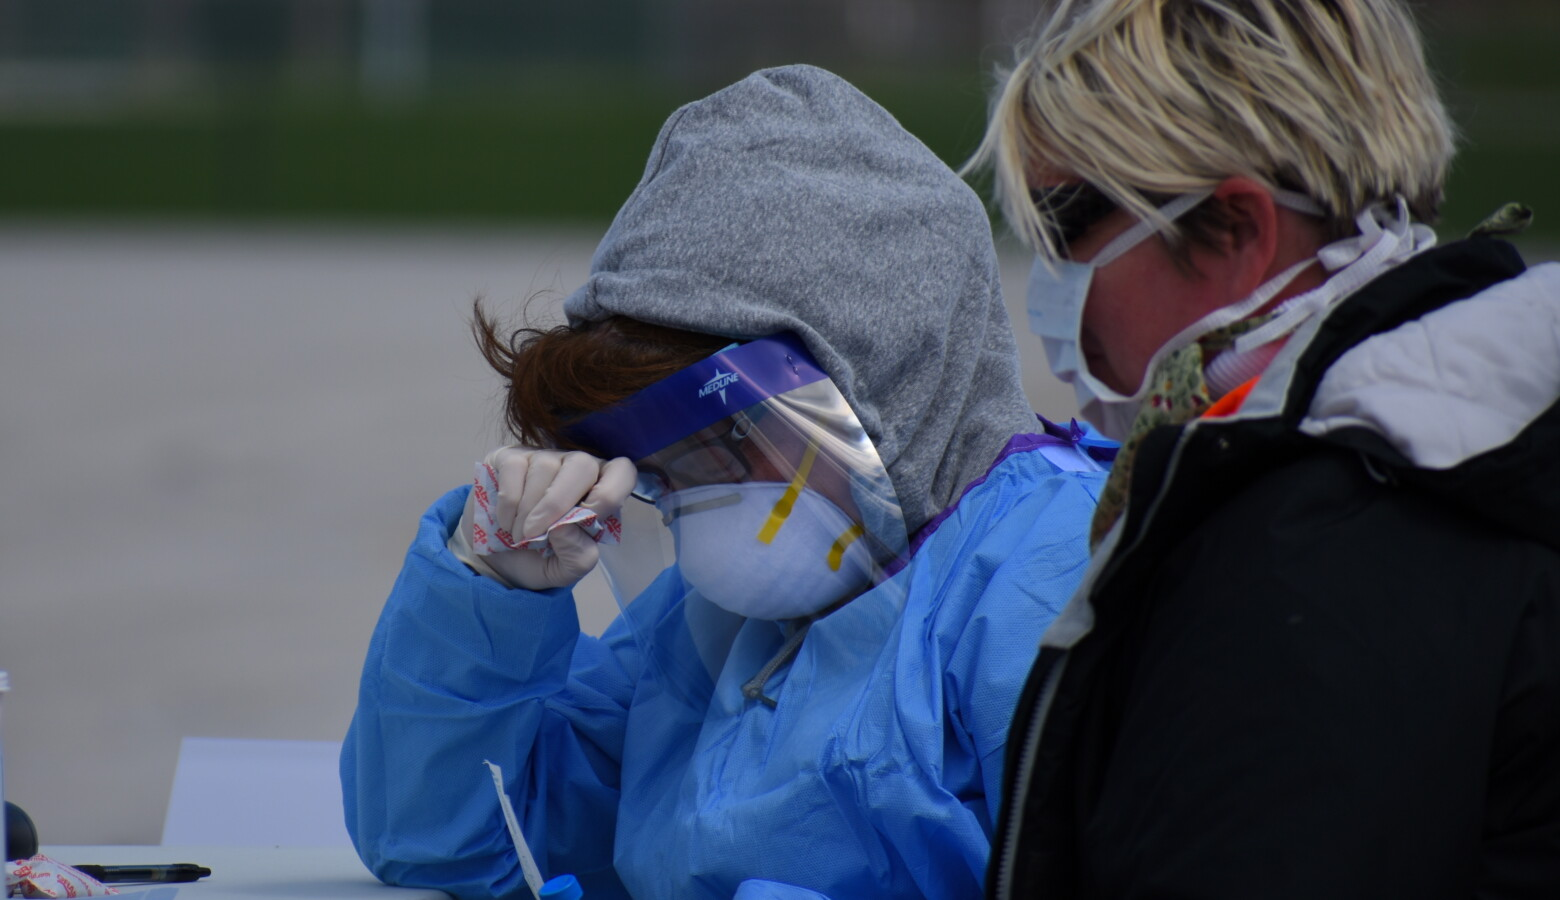 Employees doing COVID-19 testing wear considerable amounts of personal protective equipment. (Justin Hicks/IPB News)